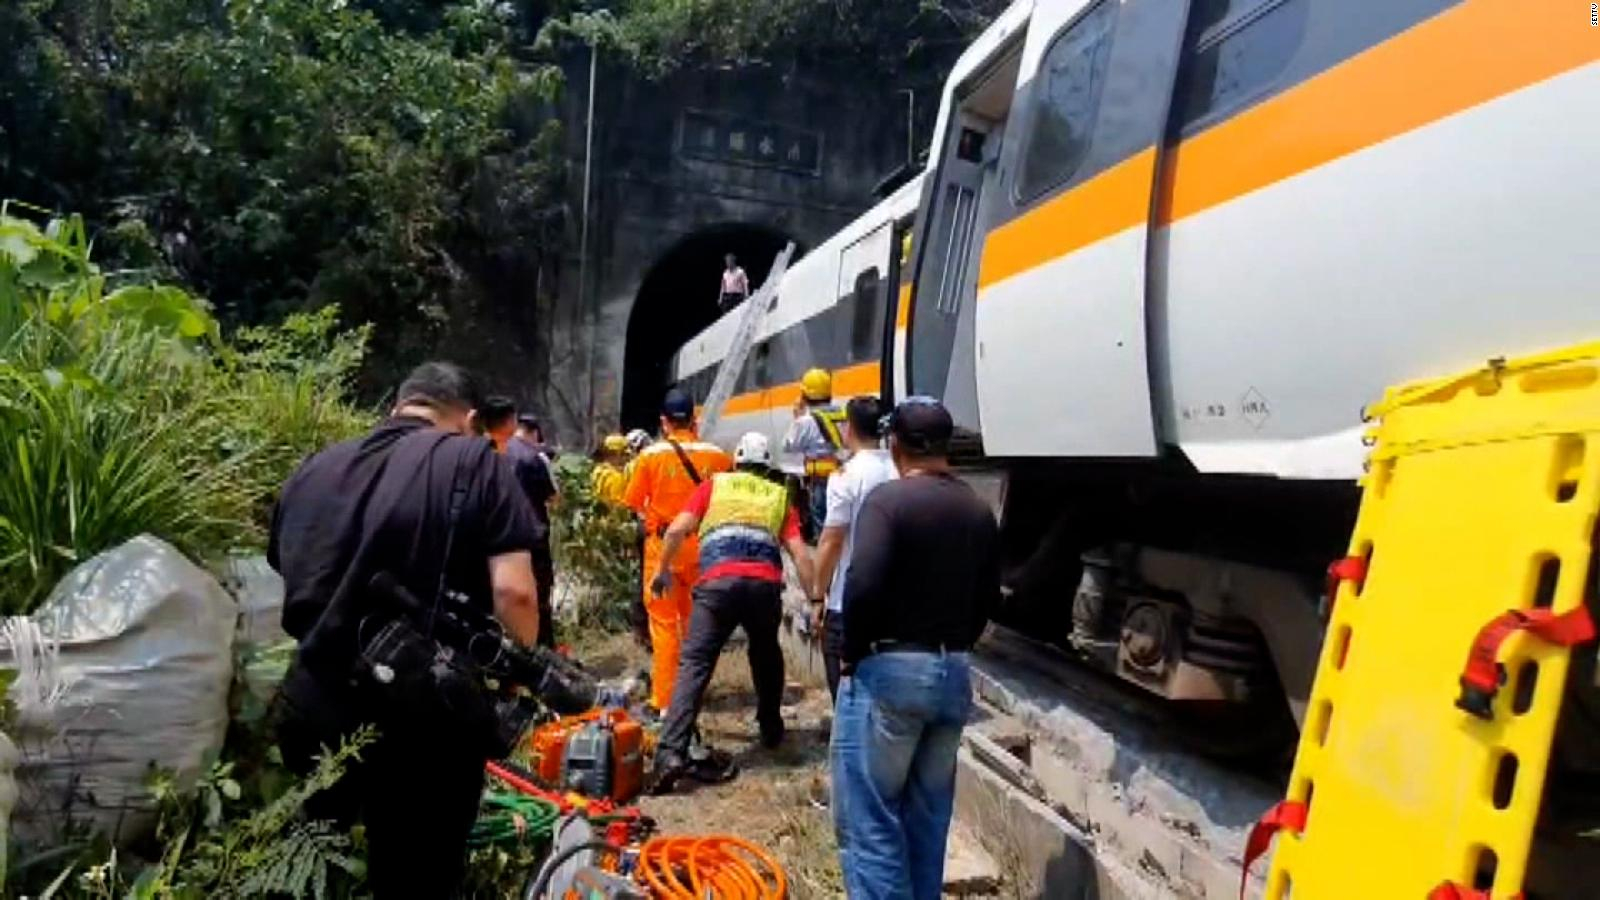 Train Accident in Taiwan: It could be caused by a car |  Video